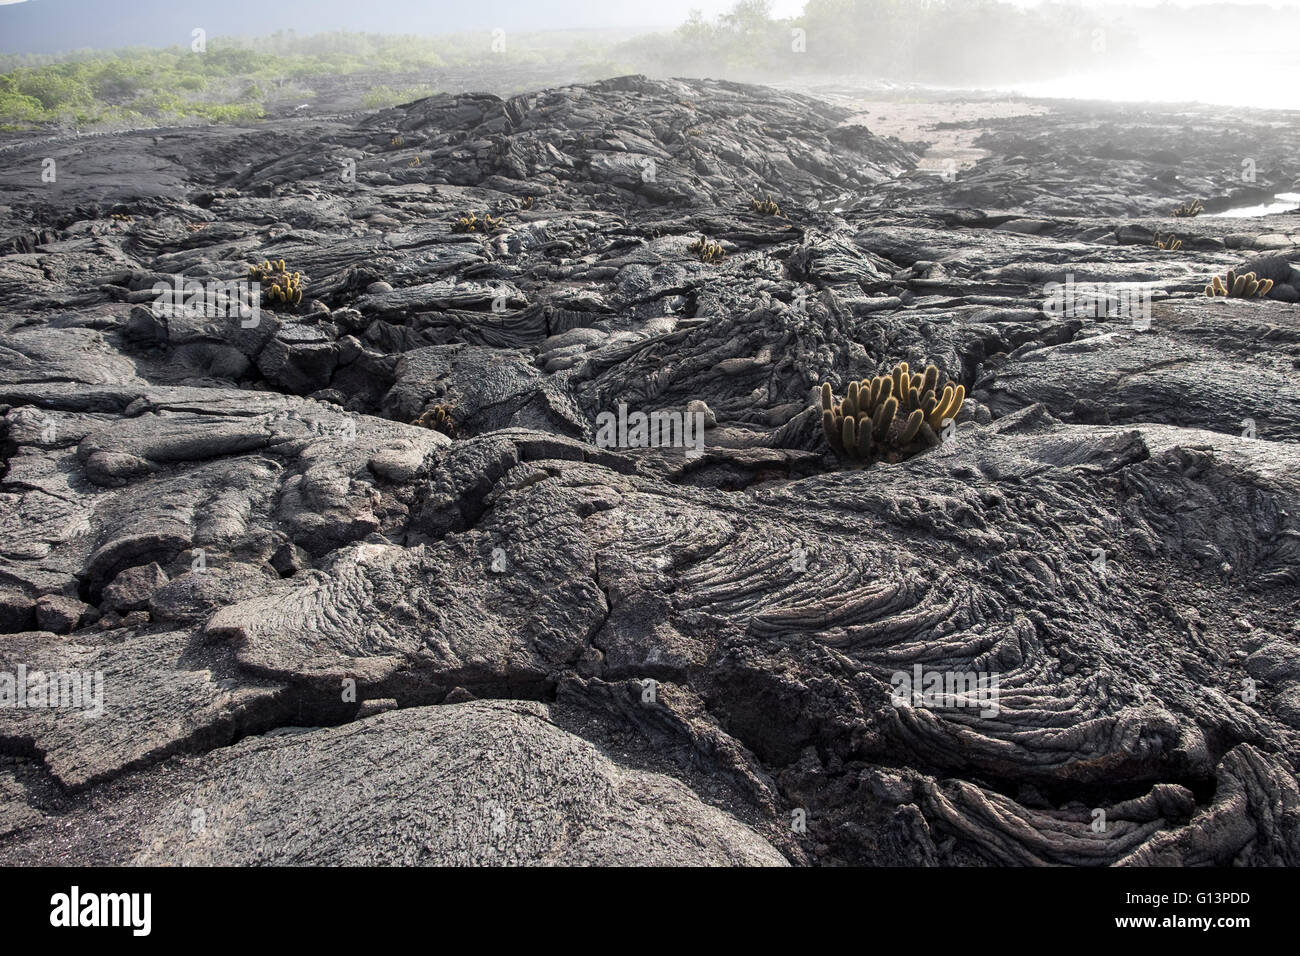 Lava rock formations in Galapagos Islands - Stock Image